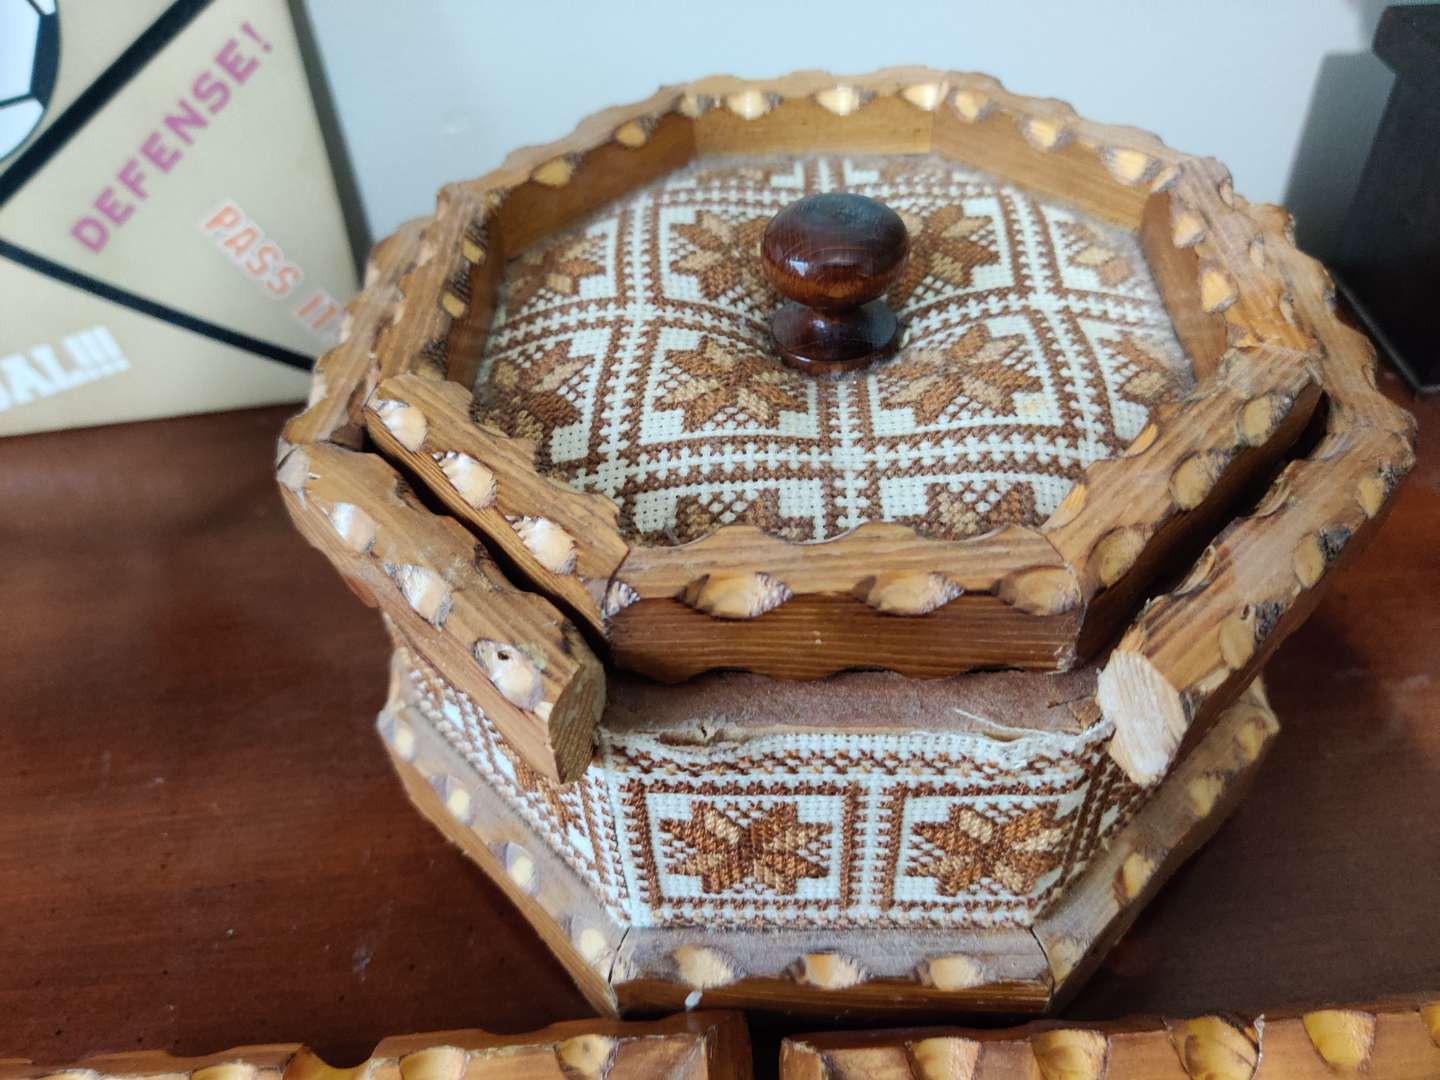 66 two handmade picture frames and one wooden handmade candy dish with lid missing one piece of wood